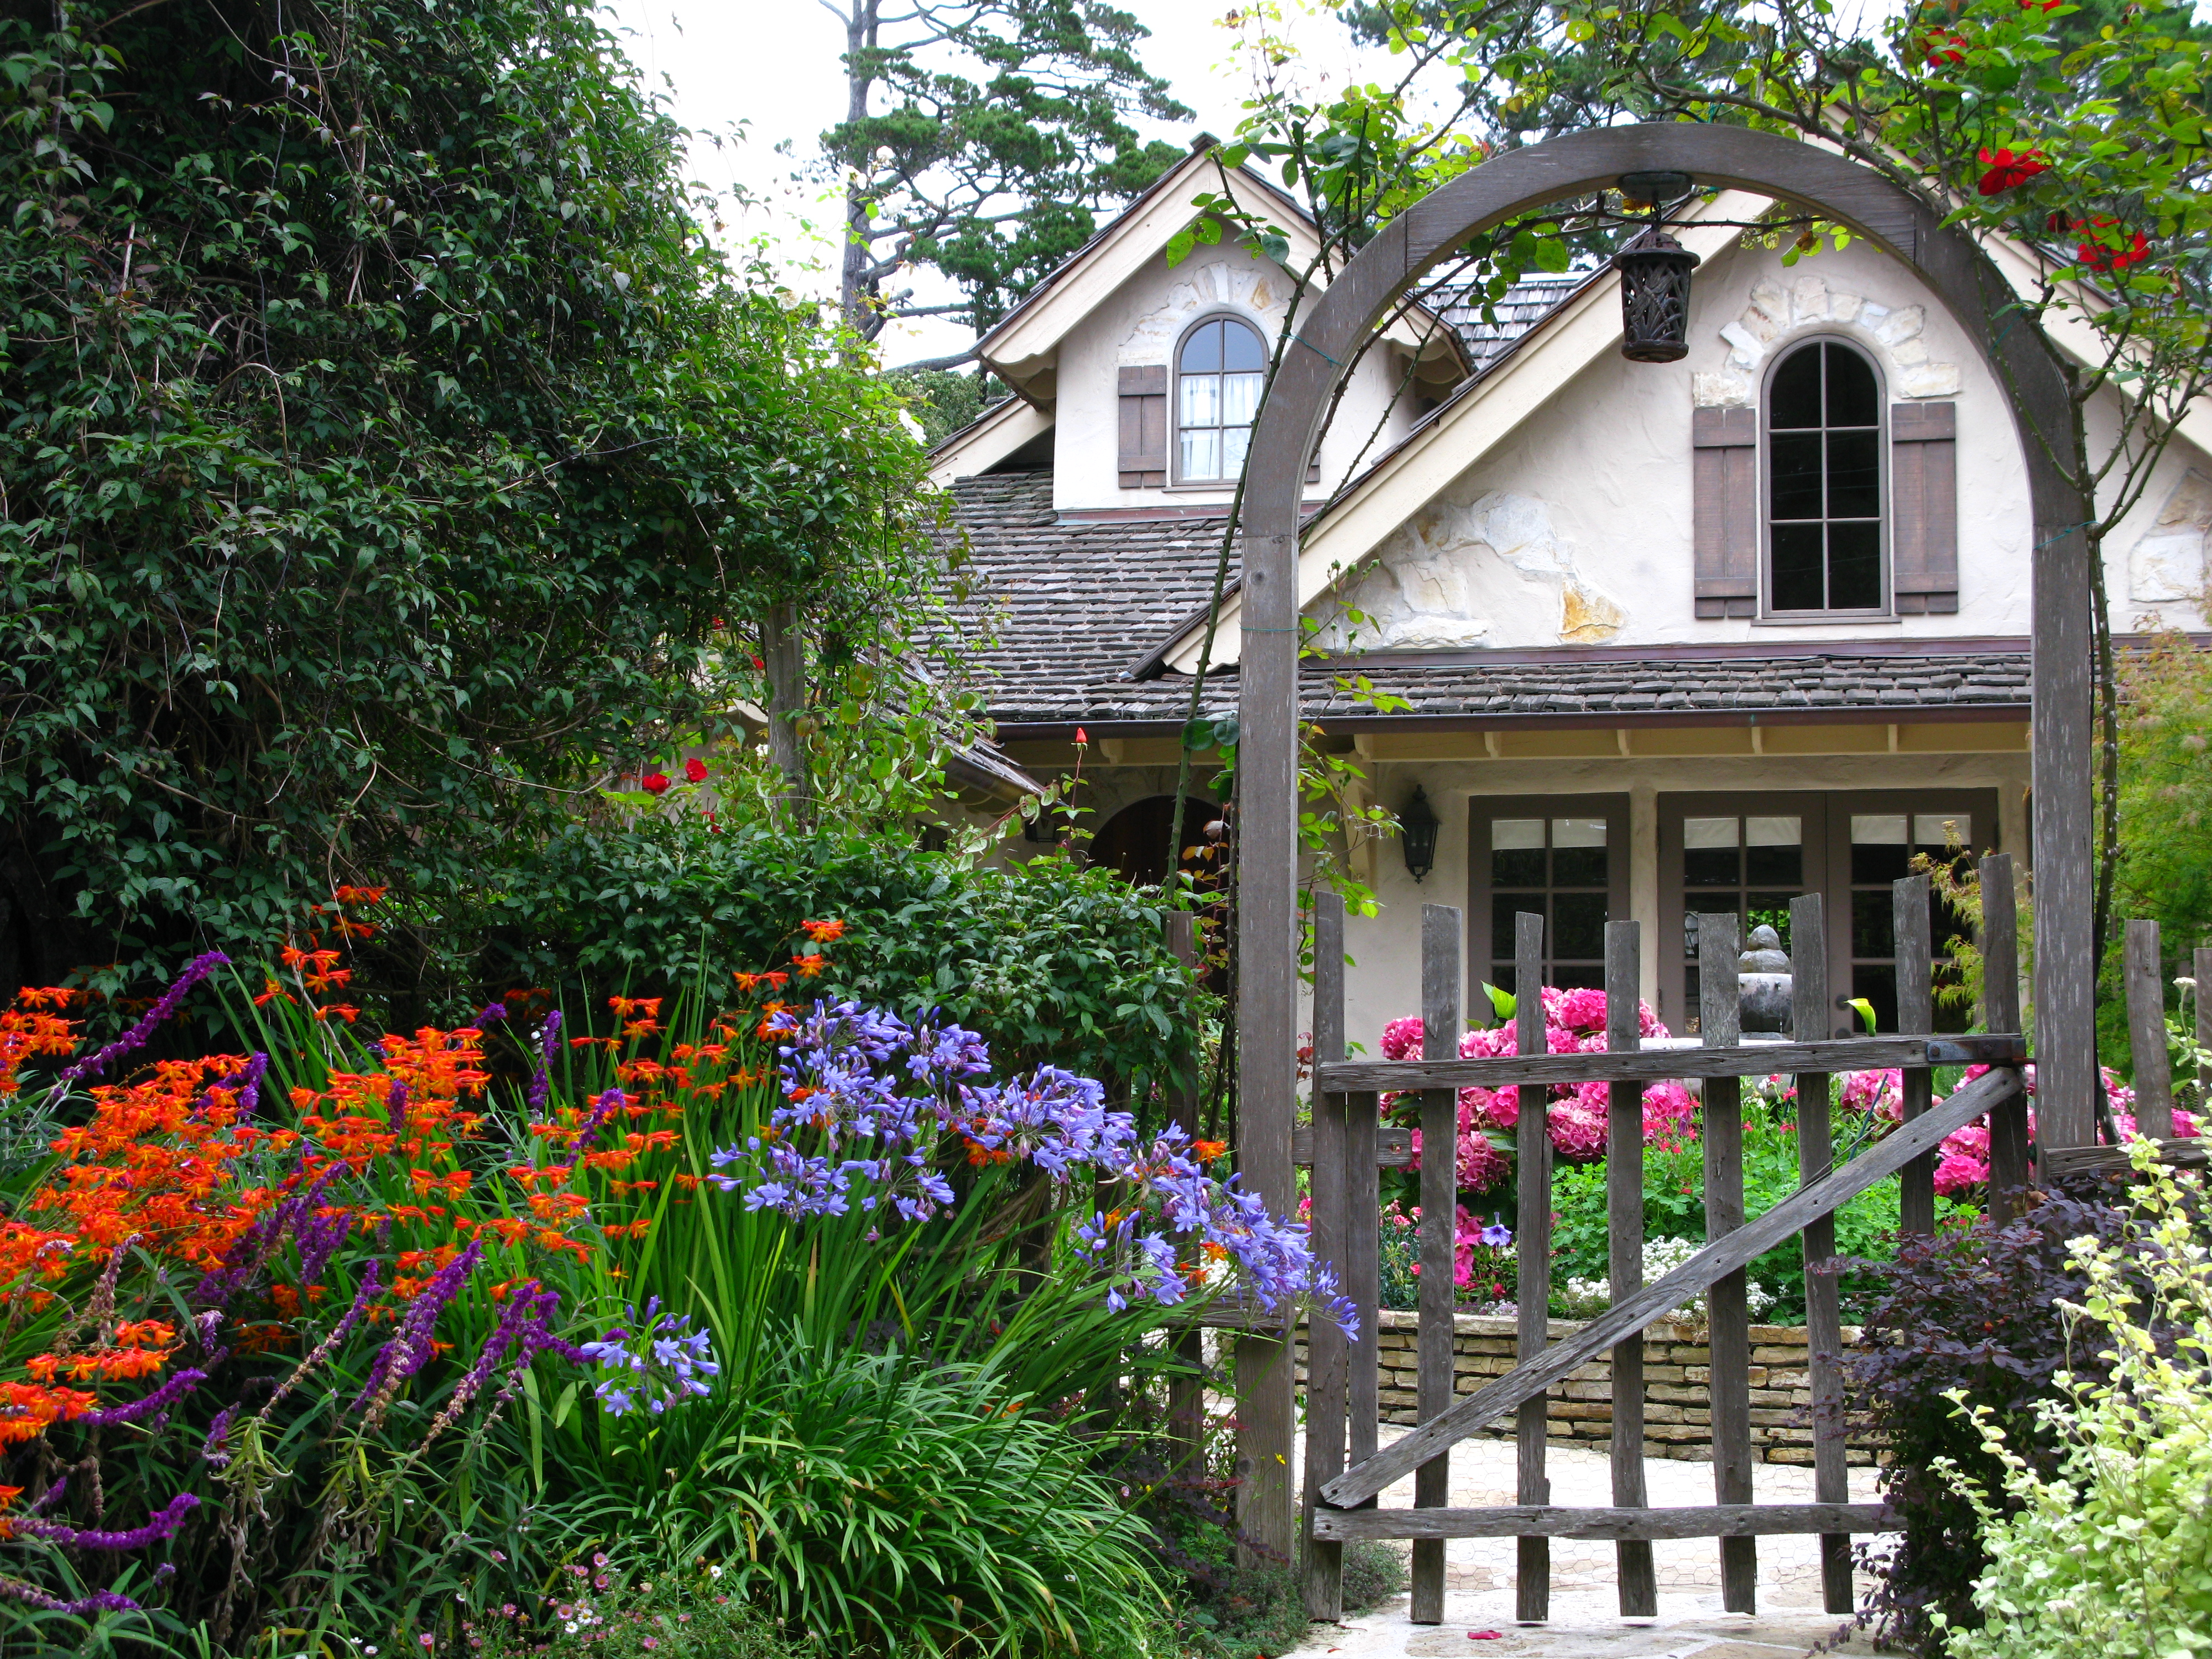 Carmel S Cottage Gardens It S Finally Time To Shop For